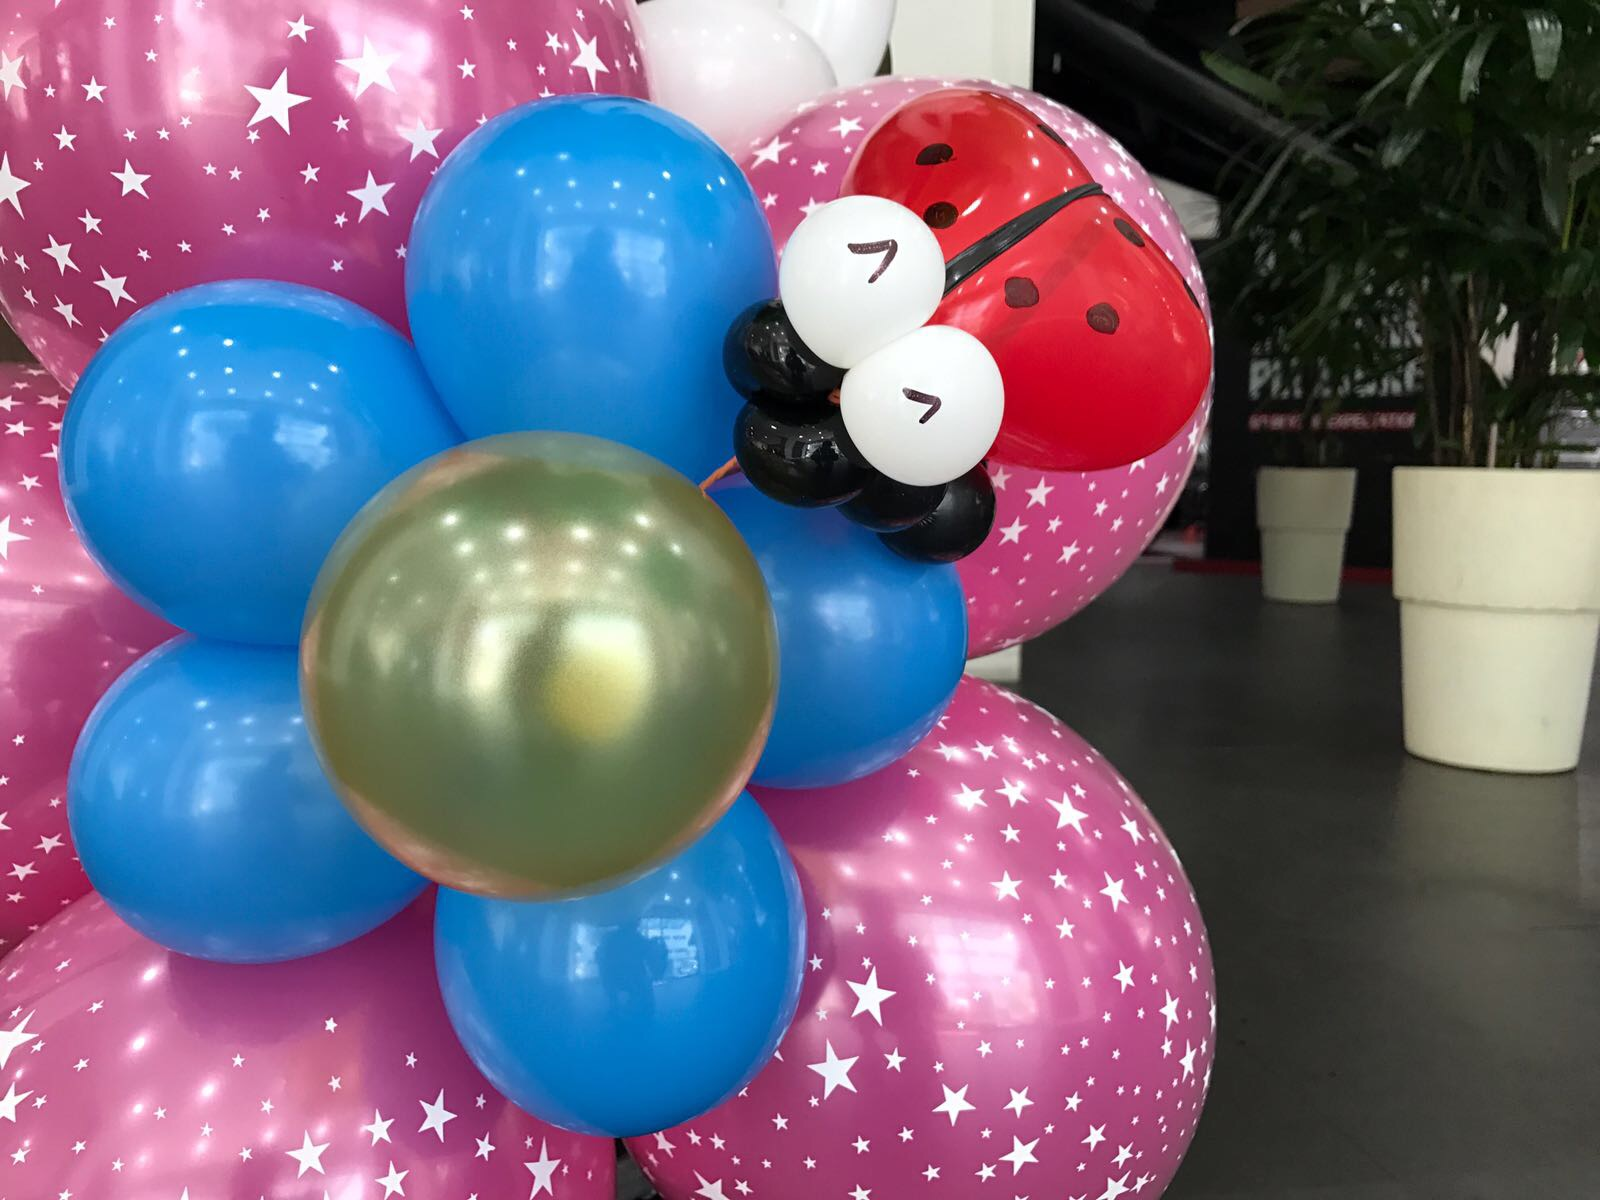 Balloon flowers with ladybug that balloons for Balloon decoration for corporate events